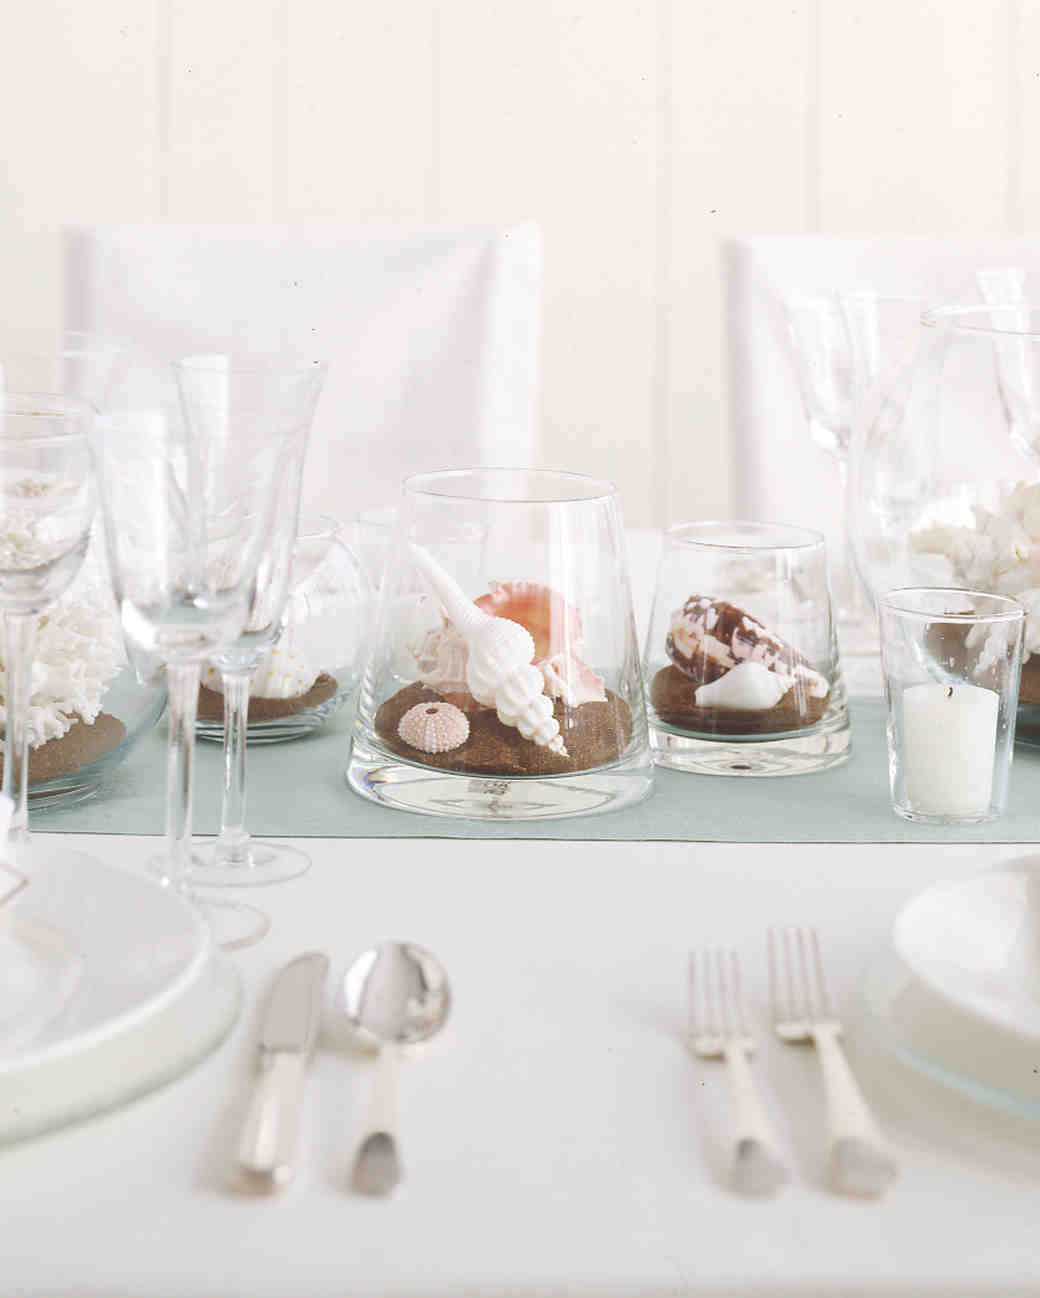 23 Beach Wedding Ideas You Can DIY To Make A Splash At Your Seaside Bash |  Martha Stewart Weddings